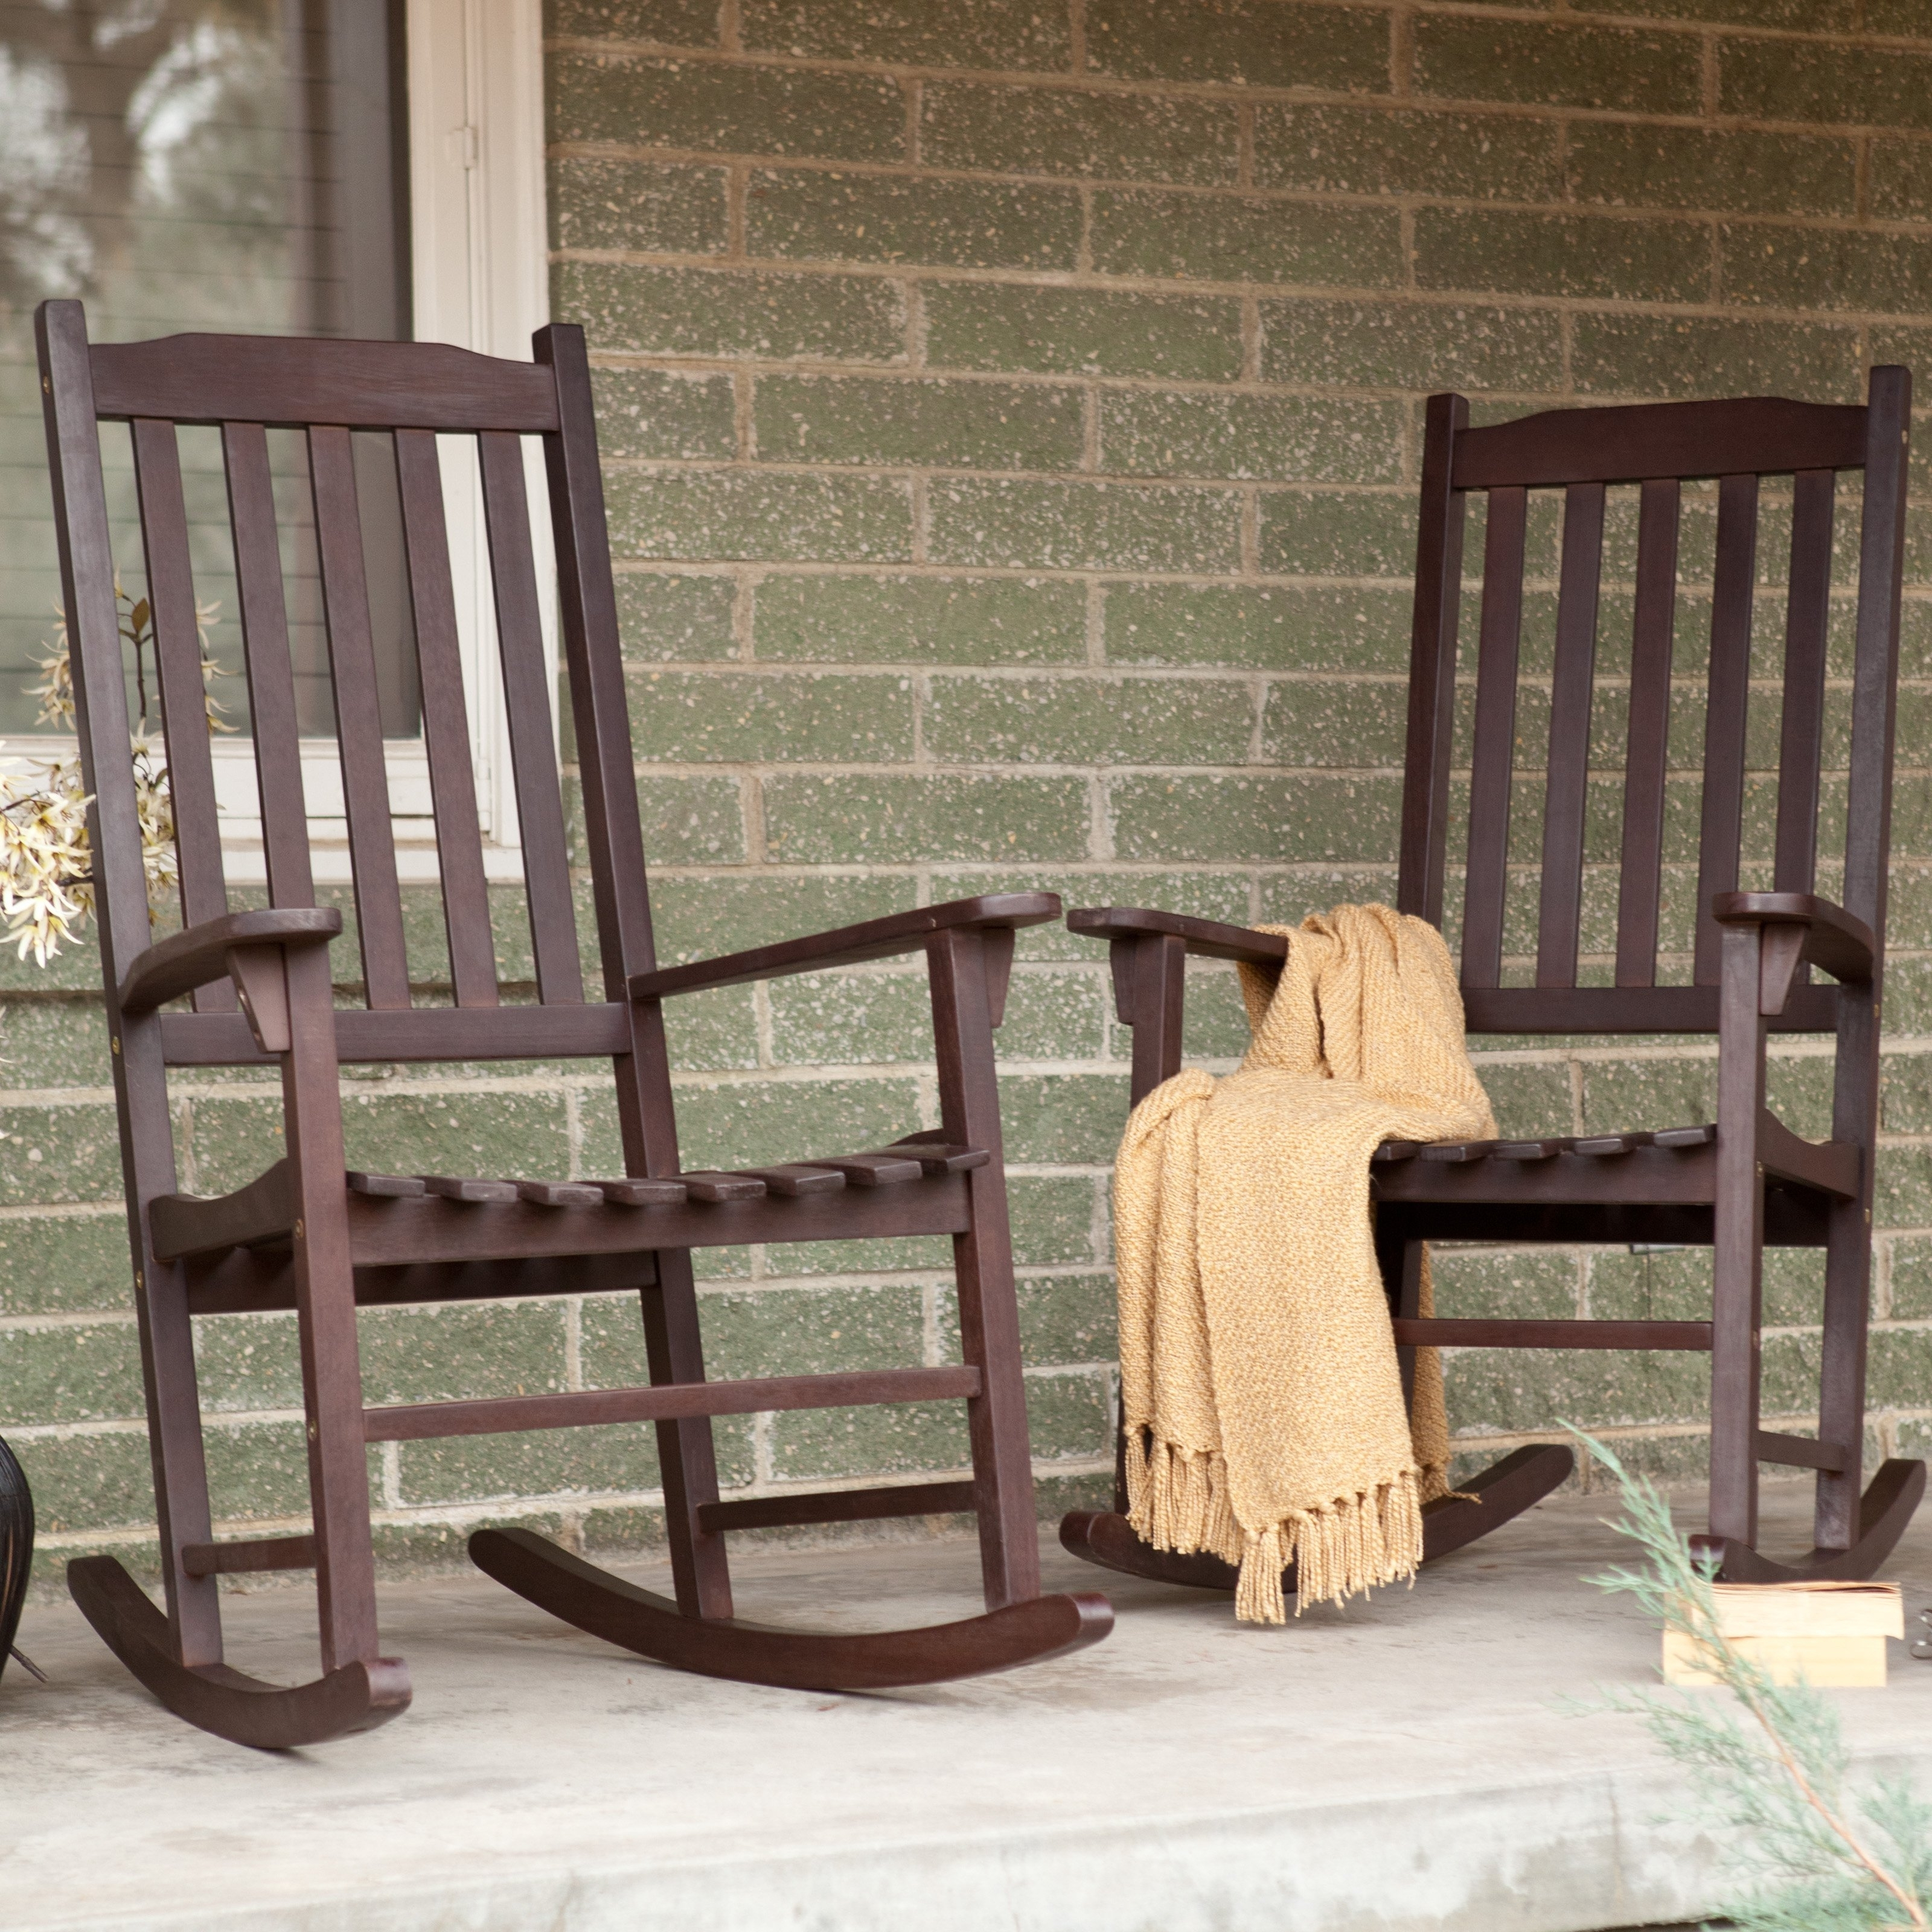 Trendy Rocking Chairs For Porch Intended For How To Choose Comfortable Outdoor Rocking Chairs – Yonohomedesign (View 17 of 20)